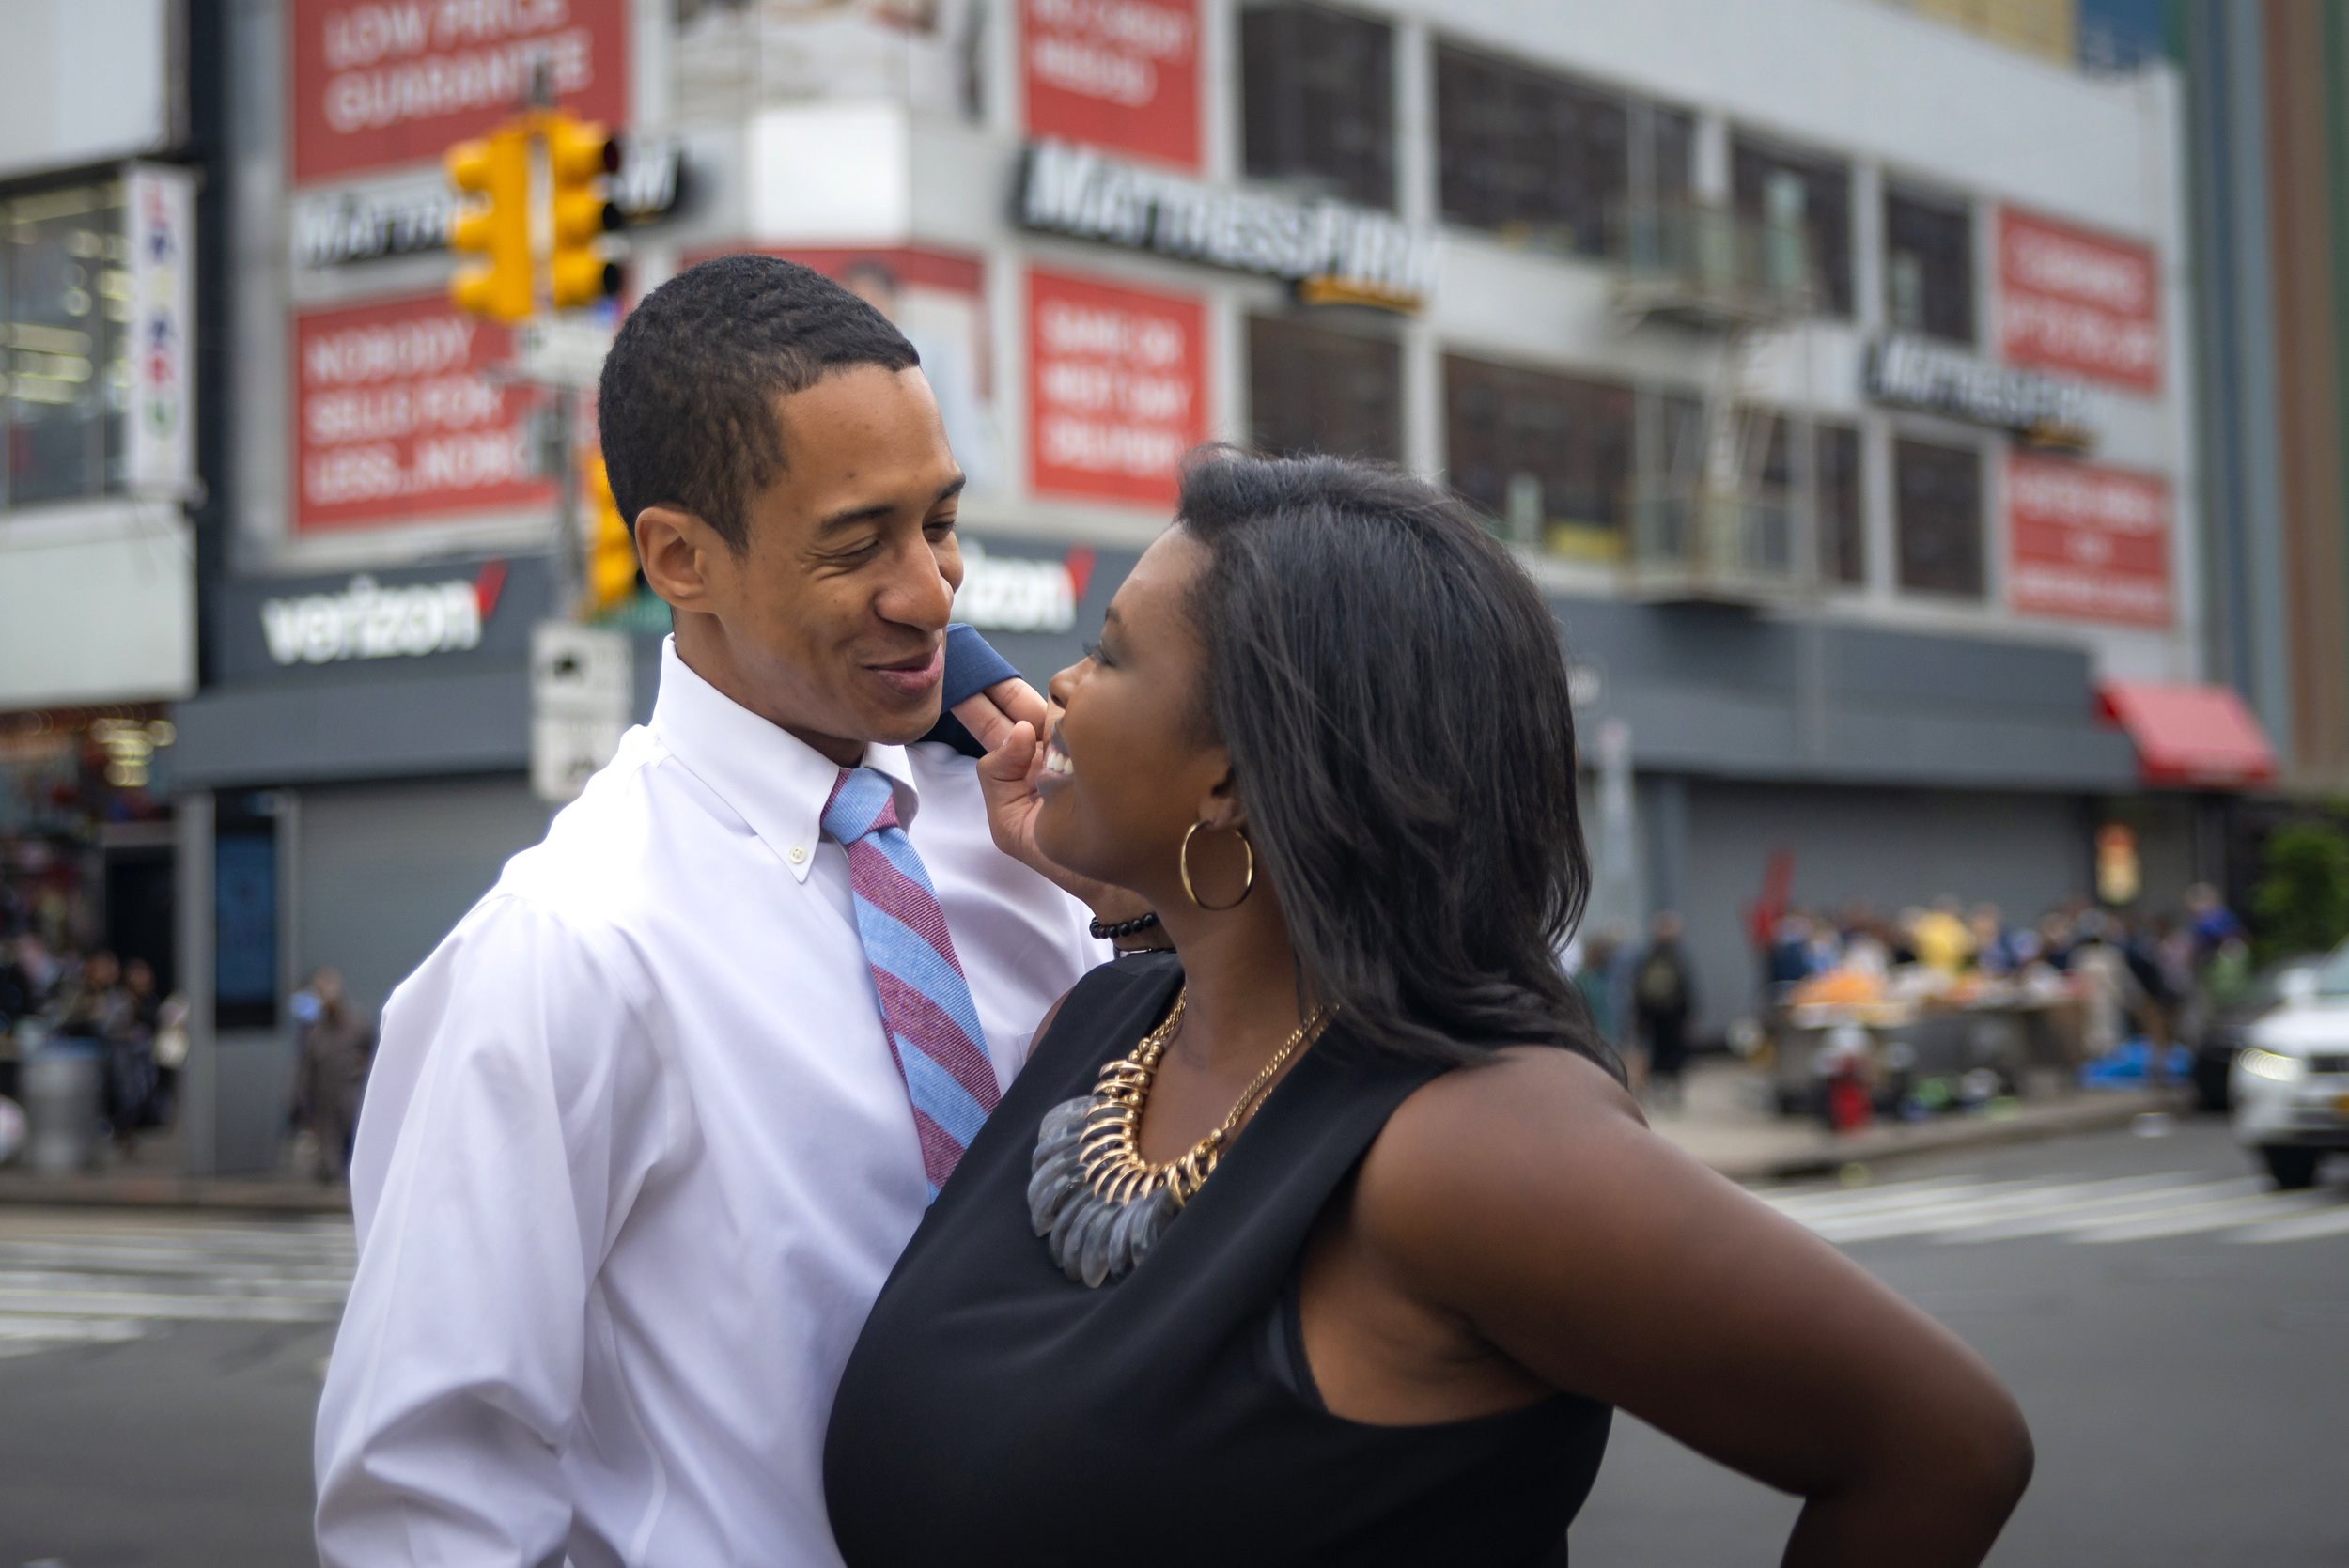 Joi & Stephen engagement session in Harlem by Unveiled-Weddings.com